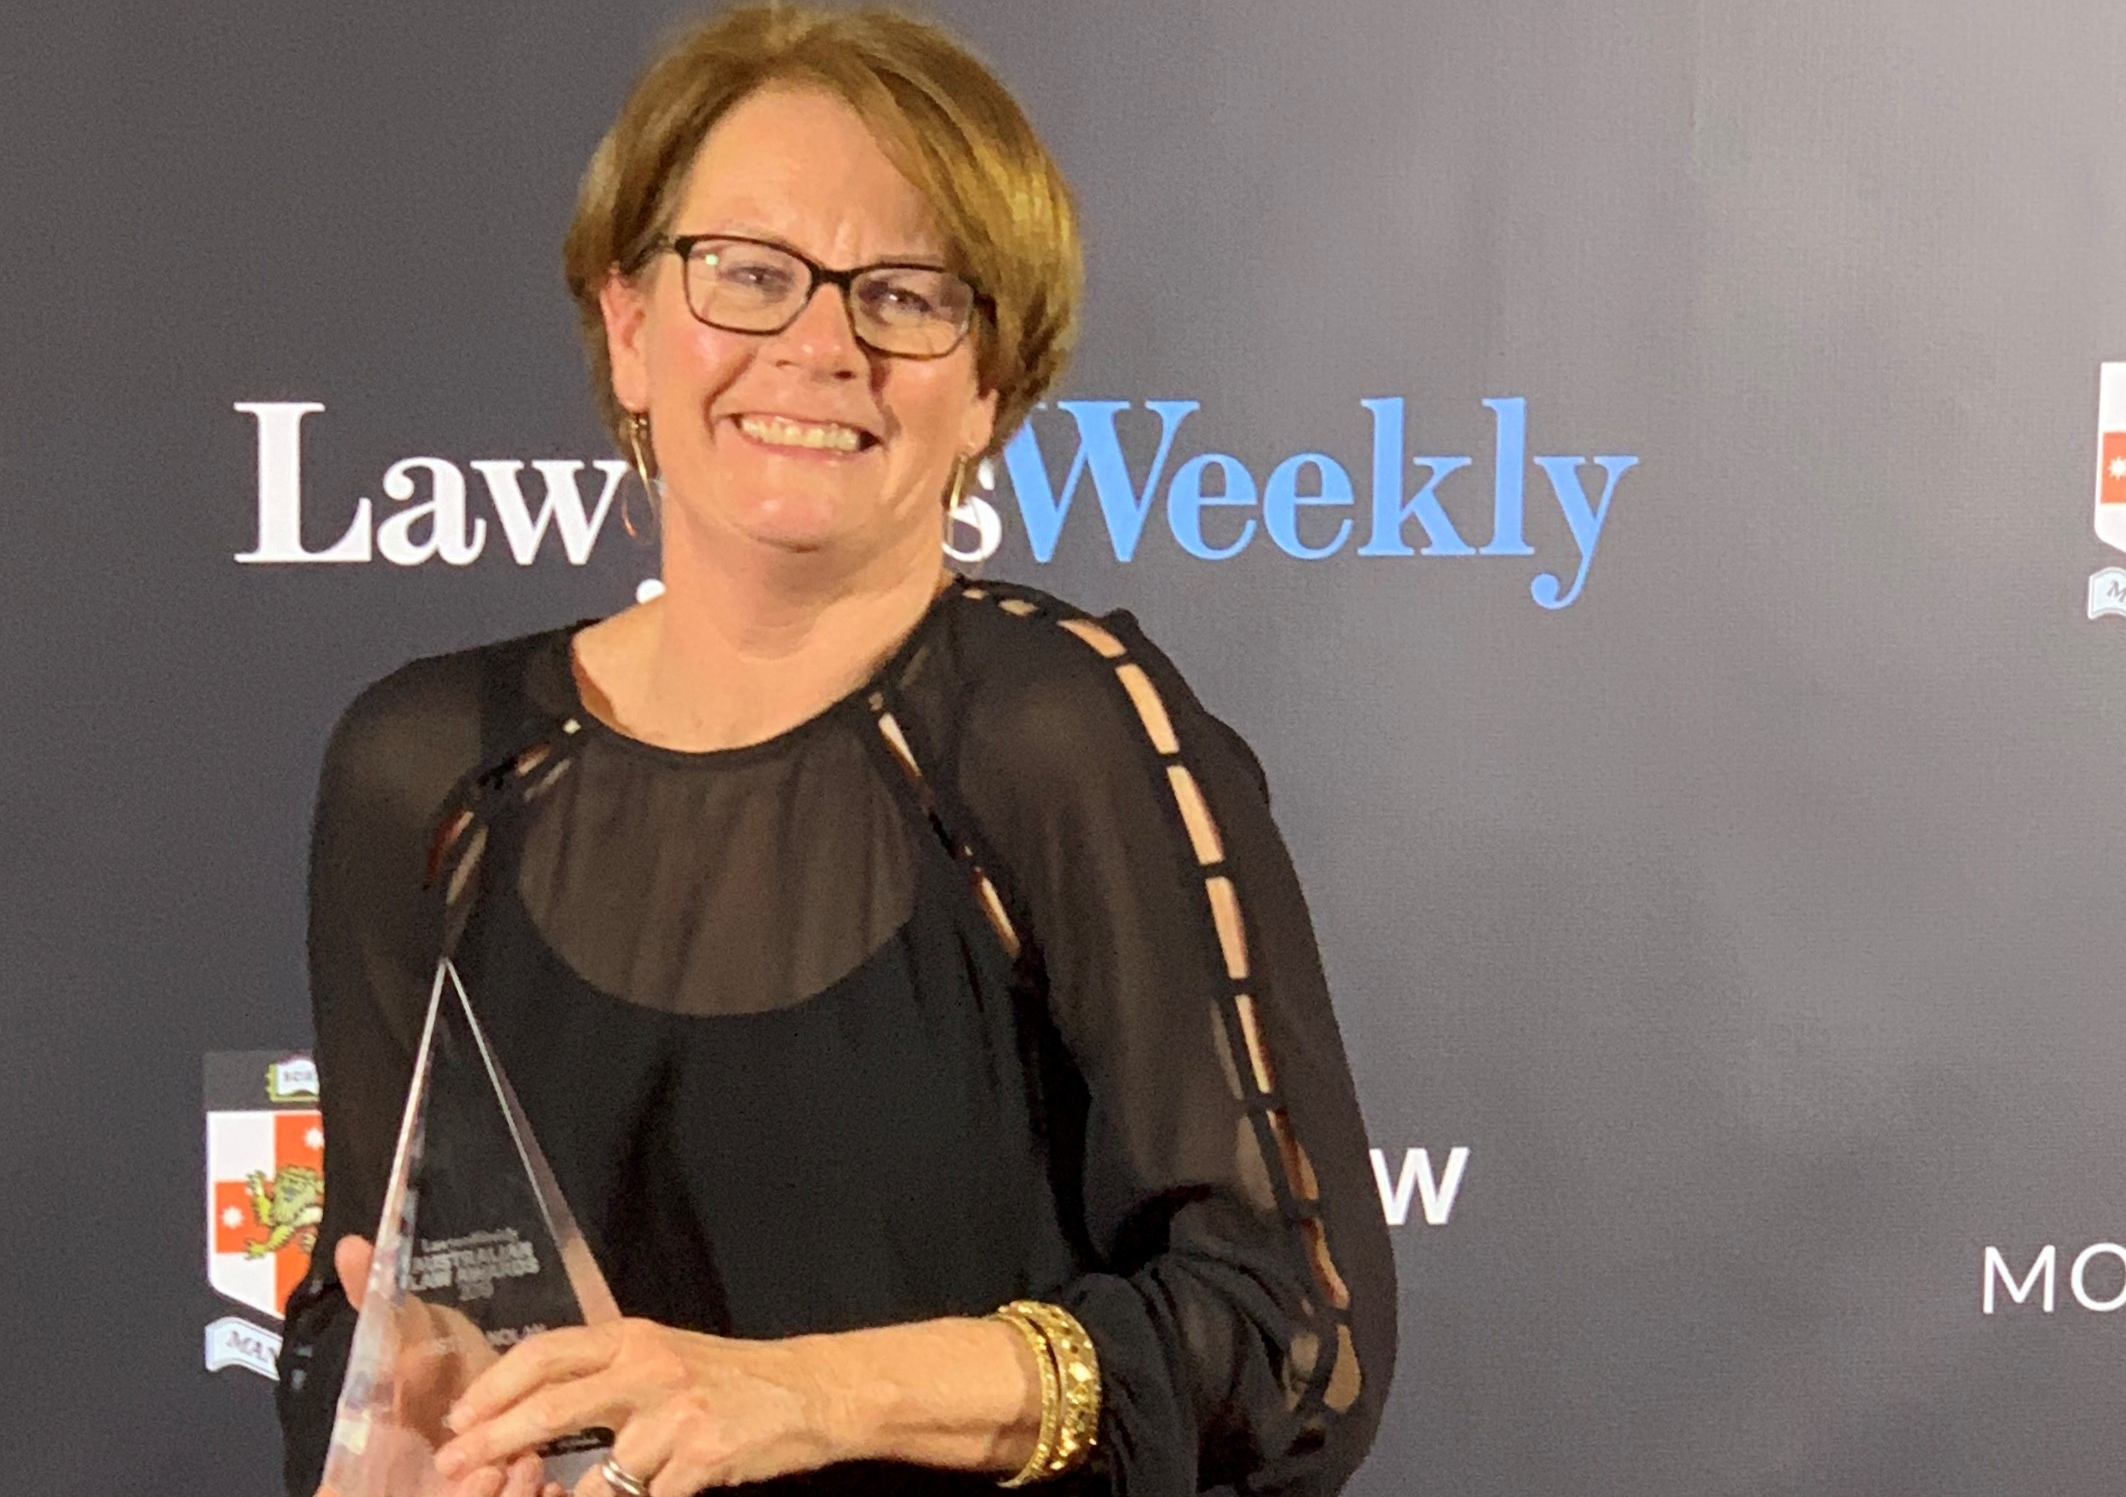 Associate Professor of Law Justine Nolan received the Academic of the Year award at the 19th Annual Lawyers Weekly Australian Law Awards held Friday at the Star in Sydney